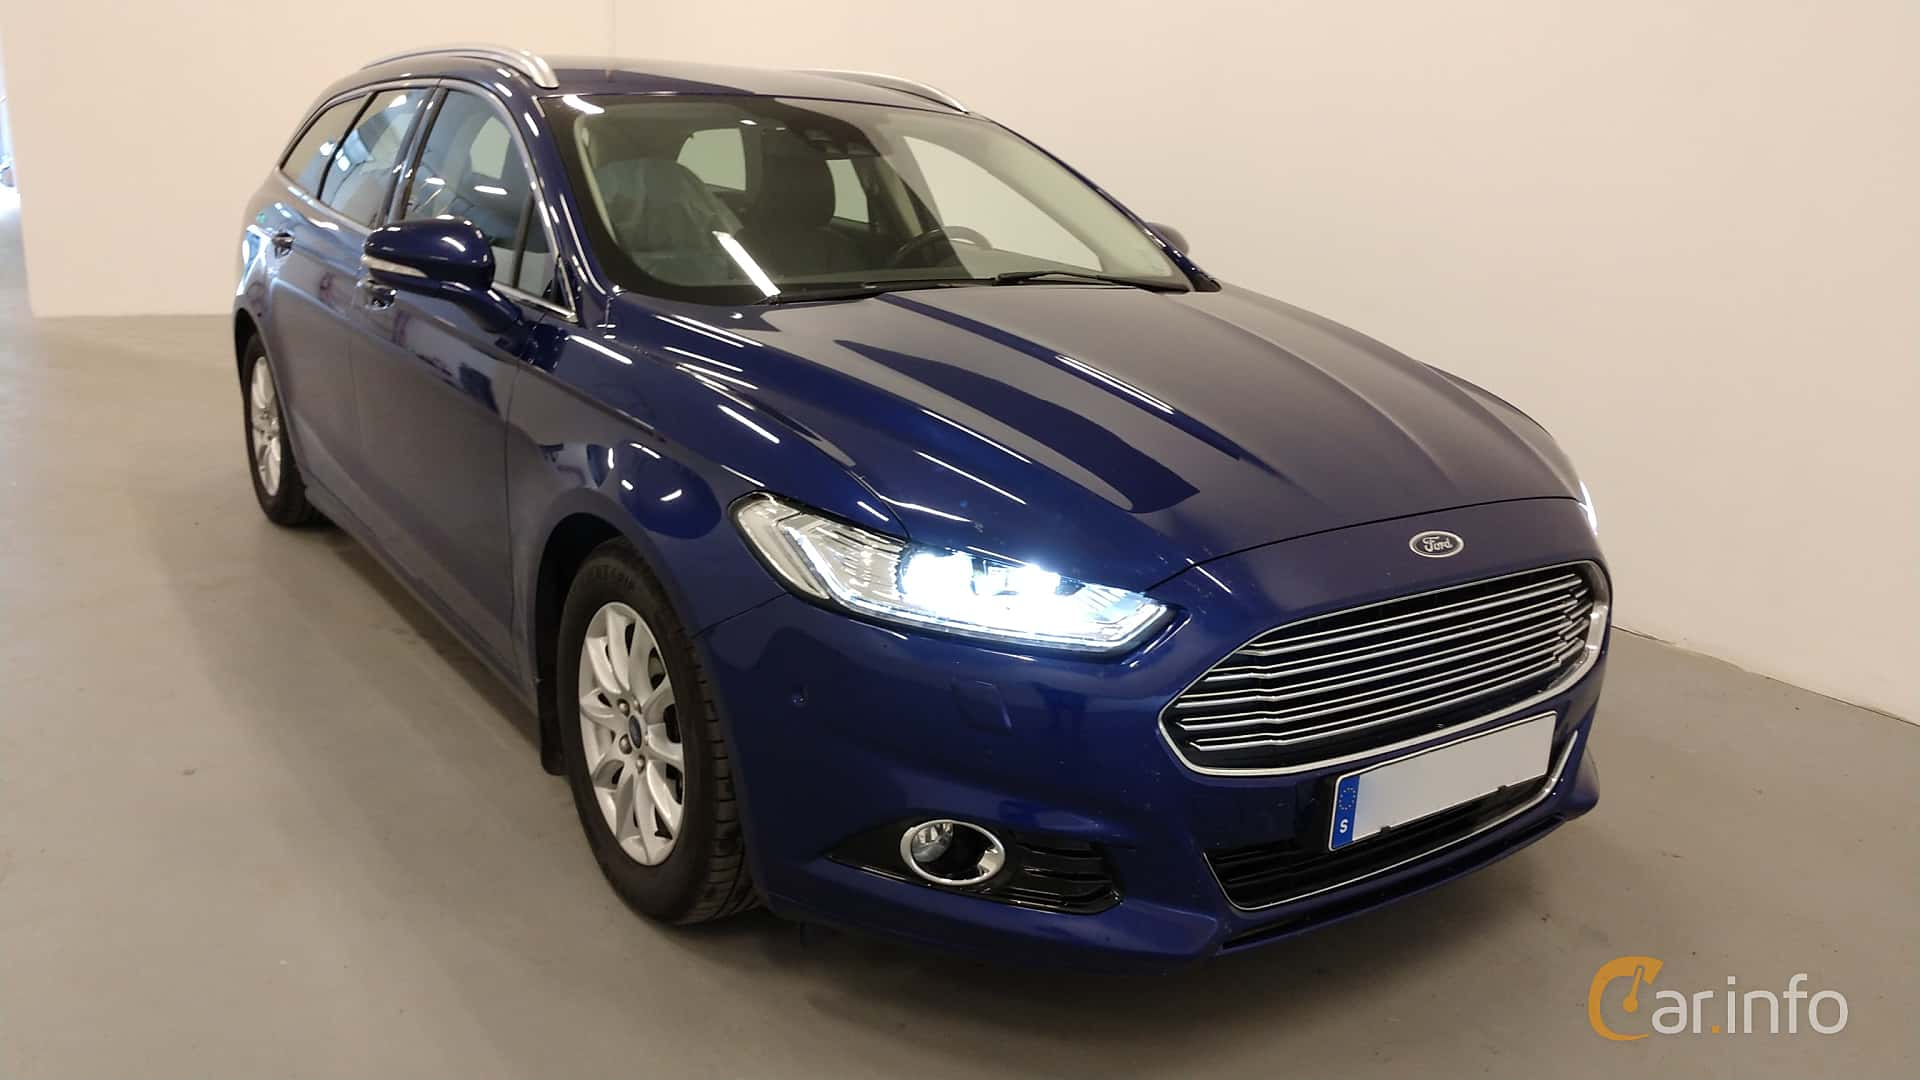 6 images of Ford Mondeo Combi 2.0 TDCi Manual, 150hp, 2015